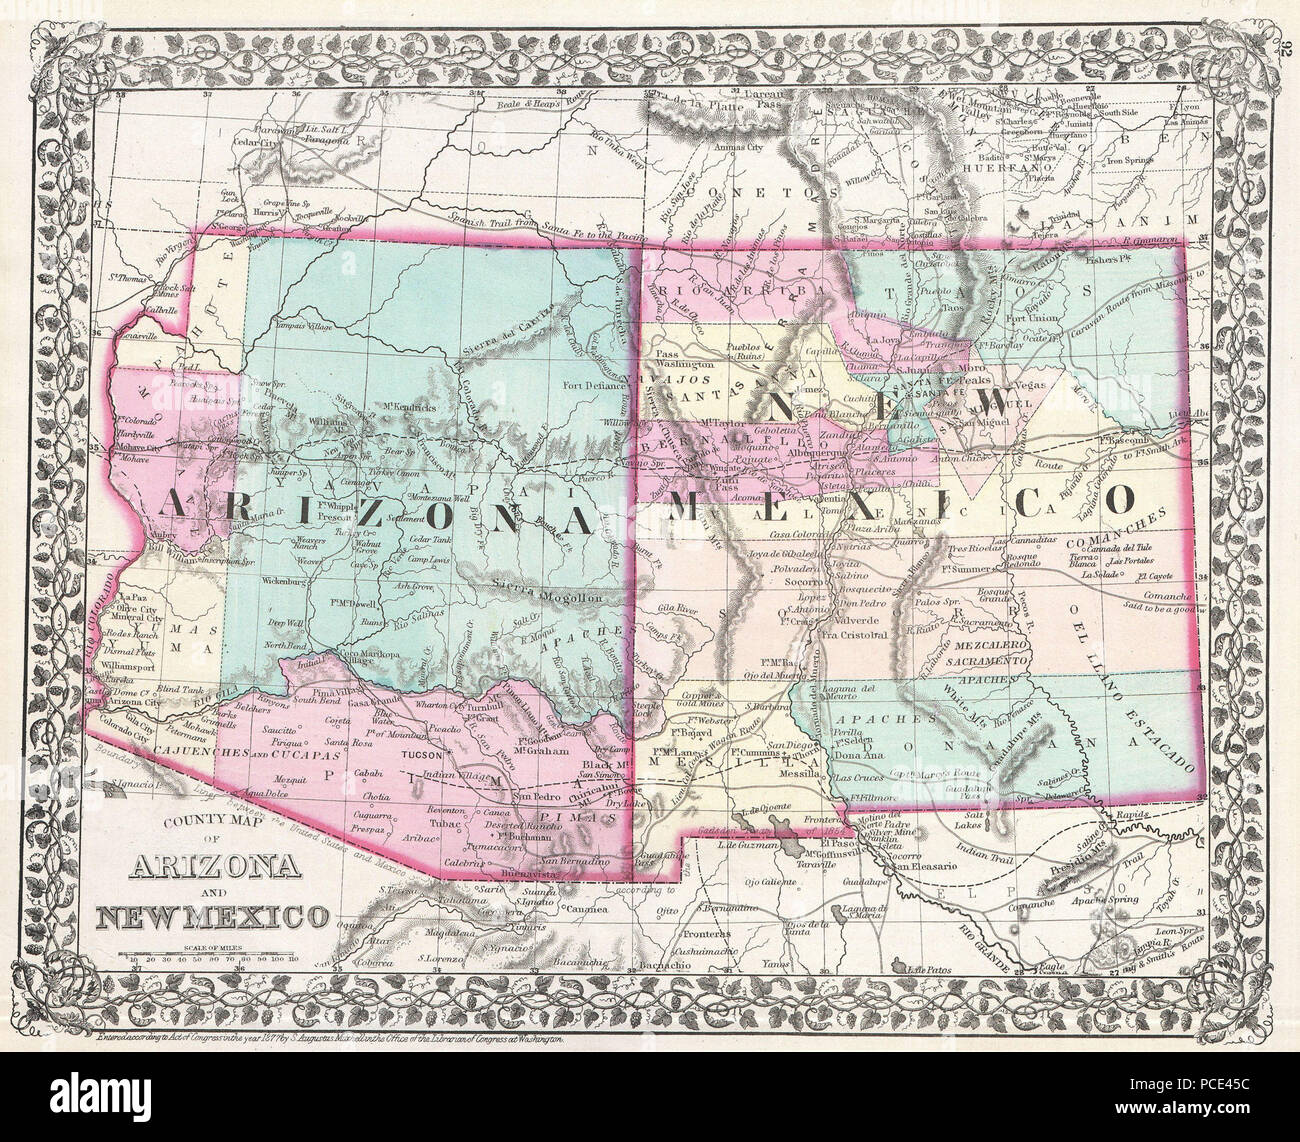 Map Of I 10 Arizona.10 1877 Mitchell Map Of Arizona And New Mexico Geographicus Aznm